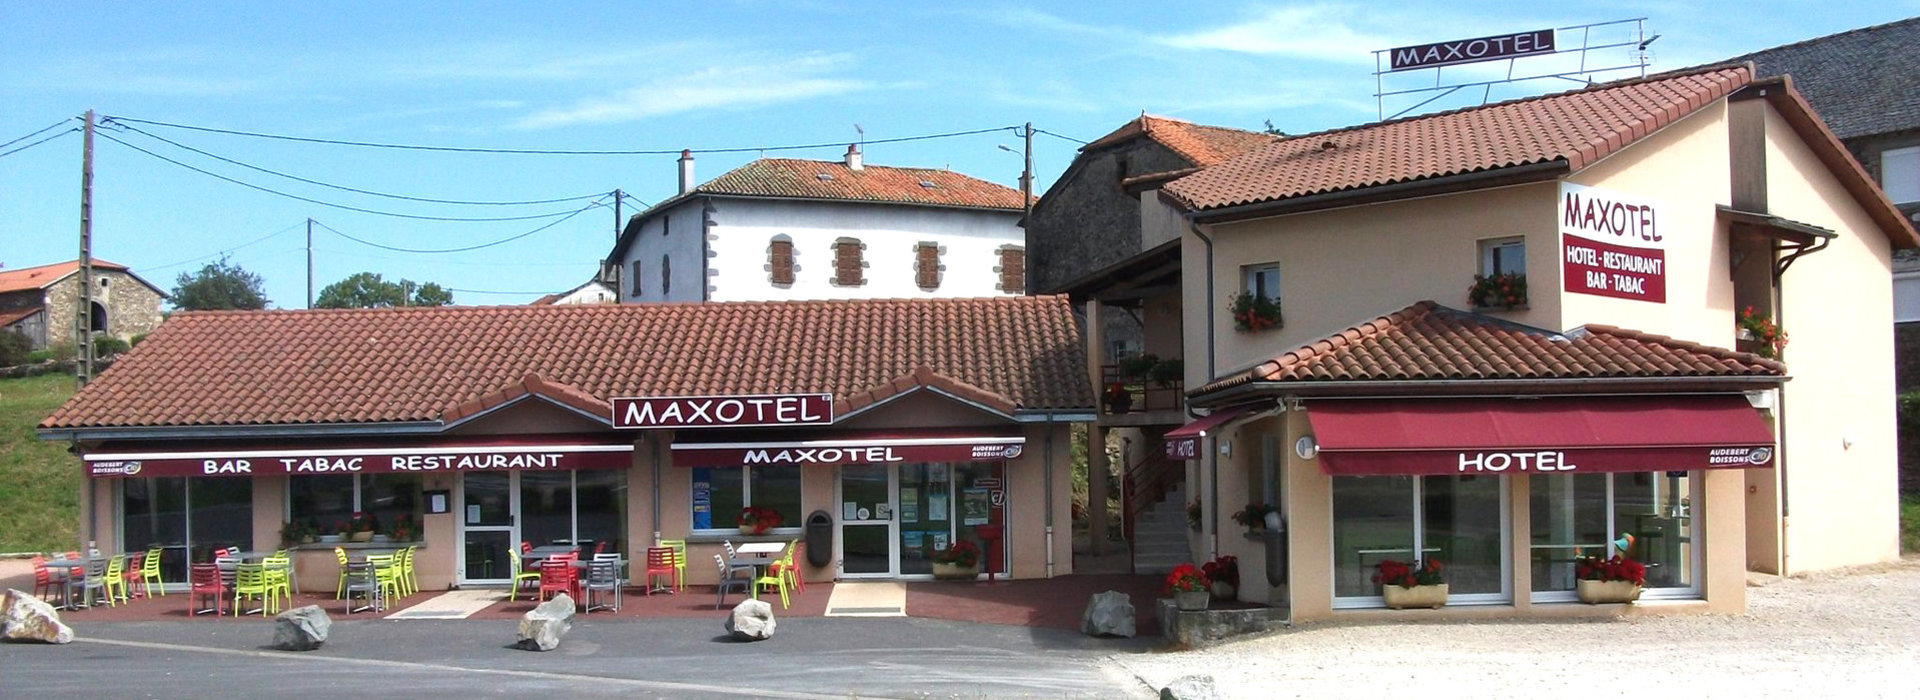 Hotel restaurant routier Espinat Ytrac Aurillac